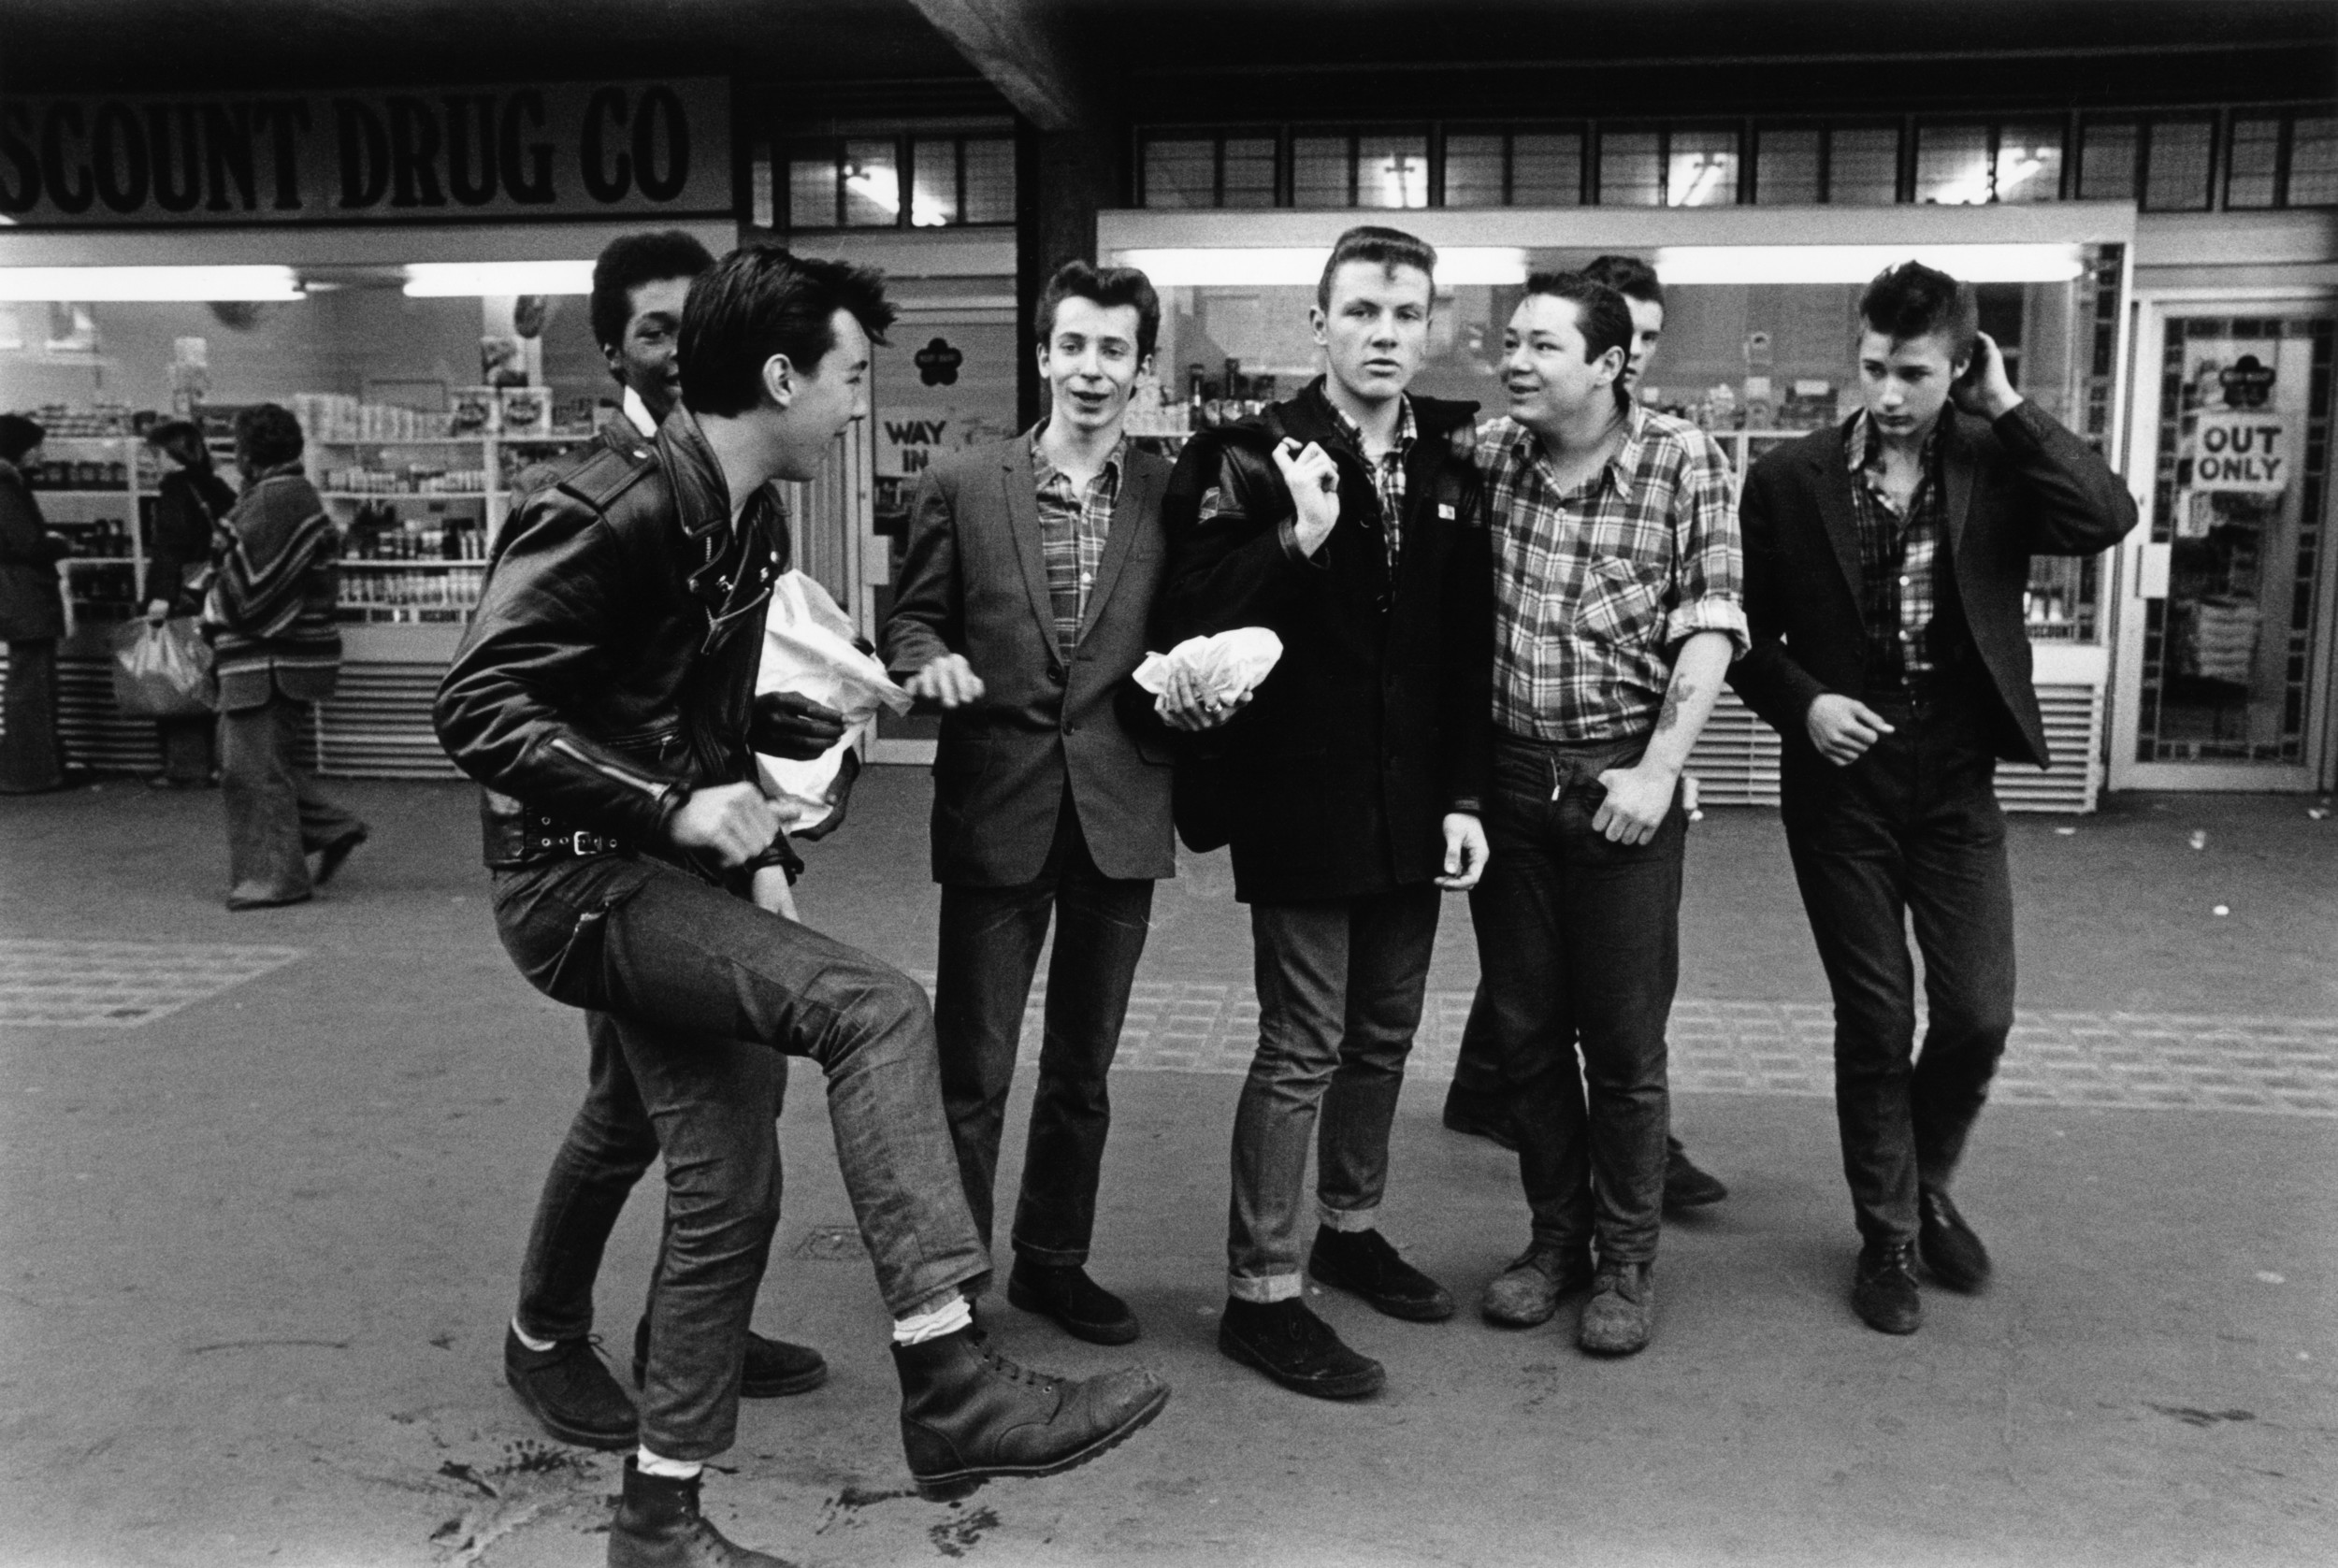 Teenage Teddy Boys: photography by Janette Beckman / PYMCA